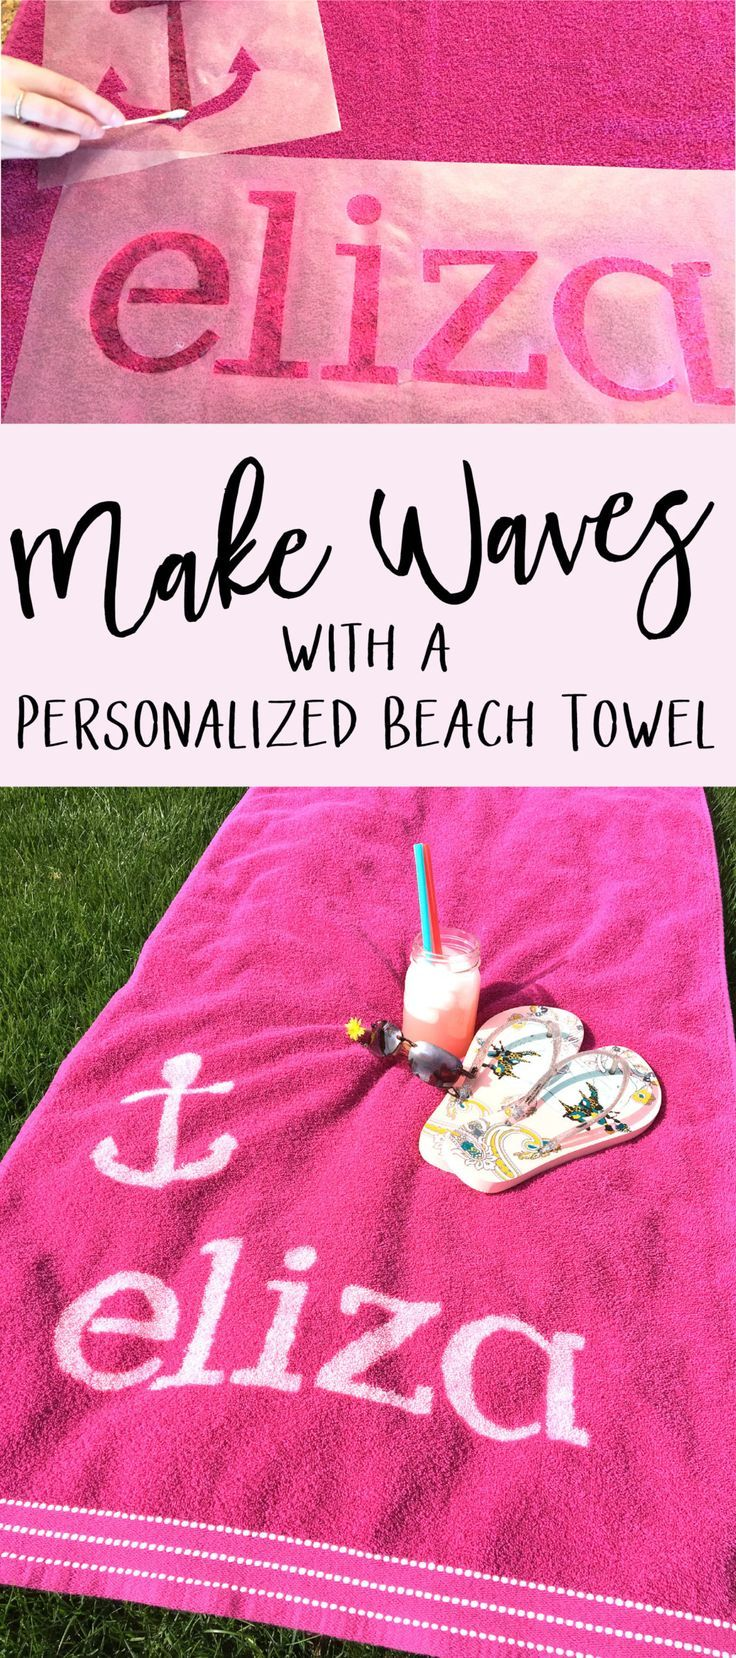 Personalized beach towel using your silhouette or Cricut machine